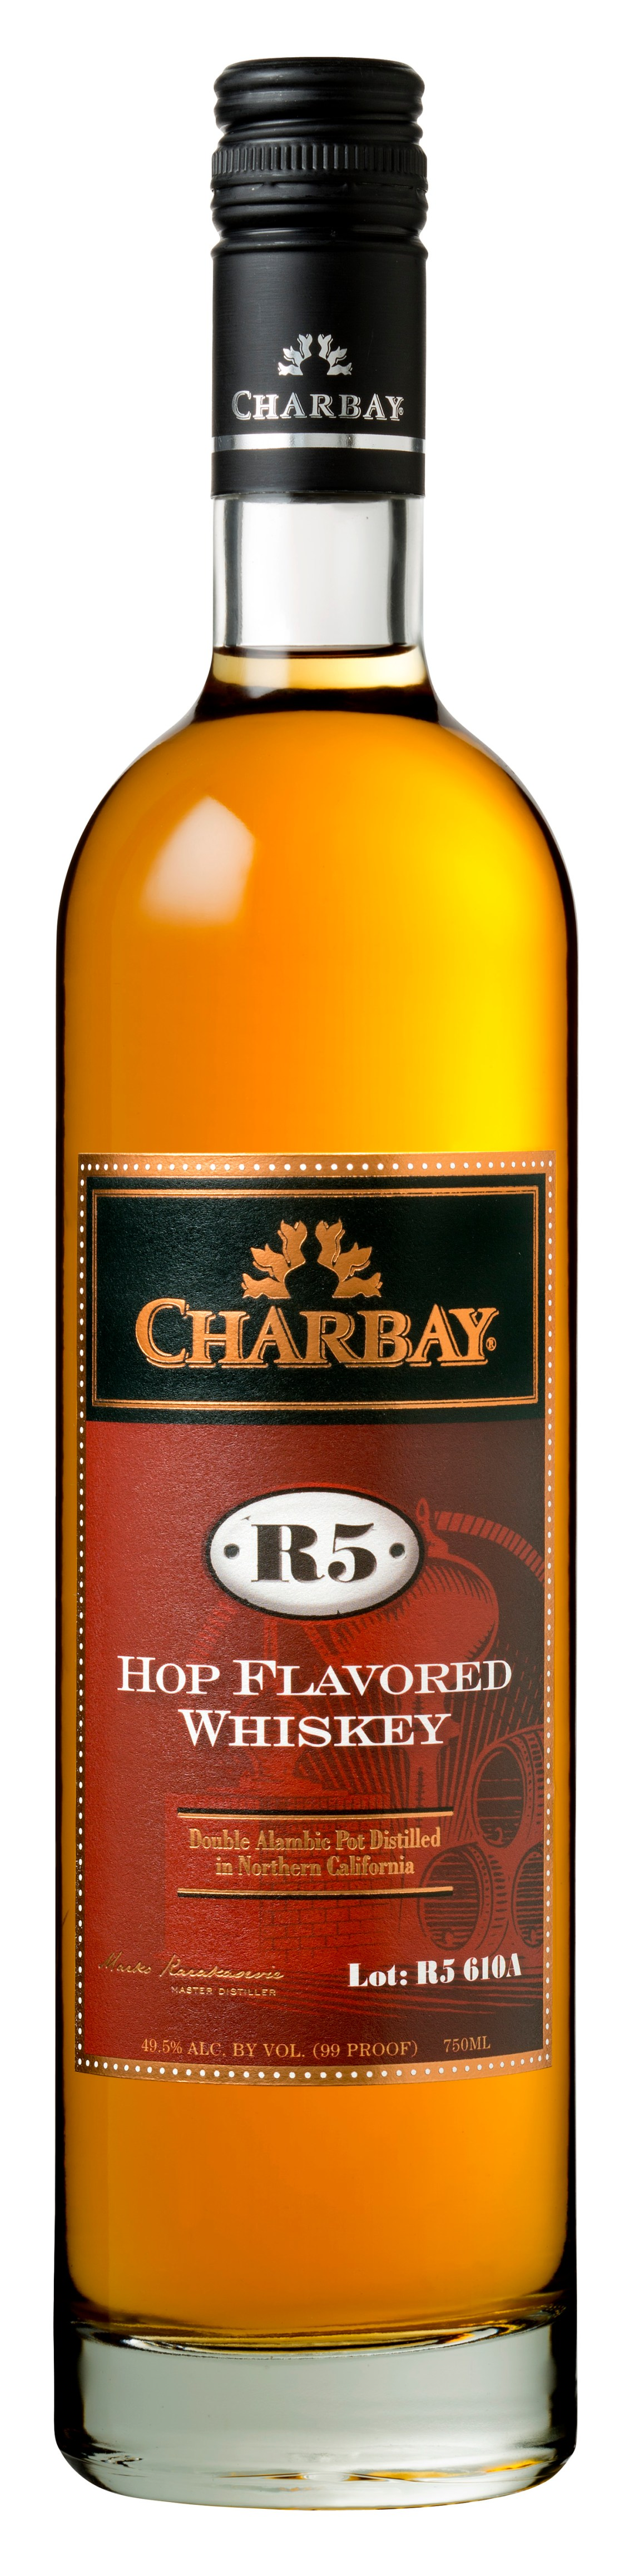 Charbay R5 Aged Hop-Flavored Whiskey Lot 610A